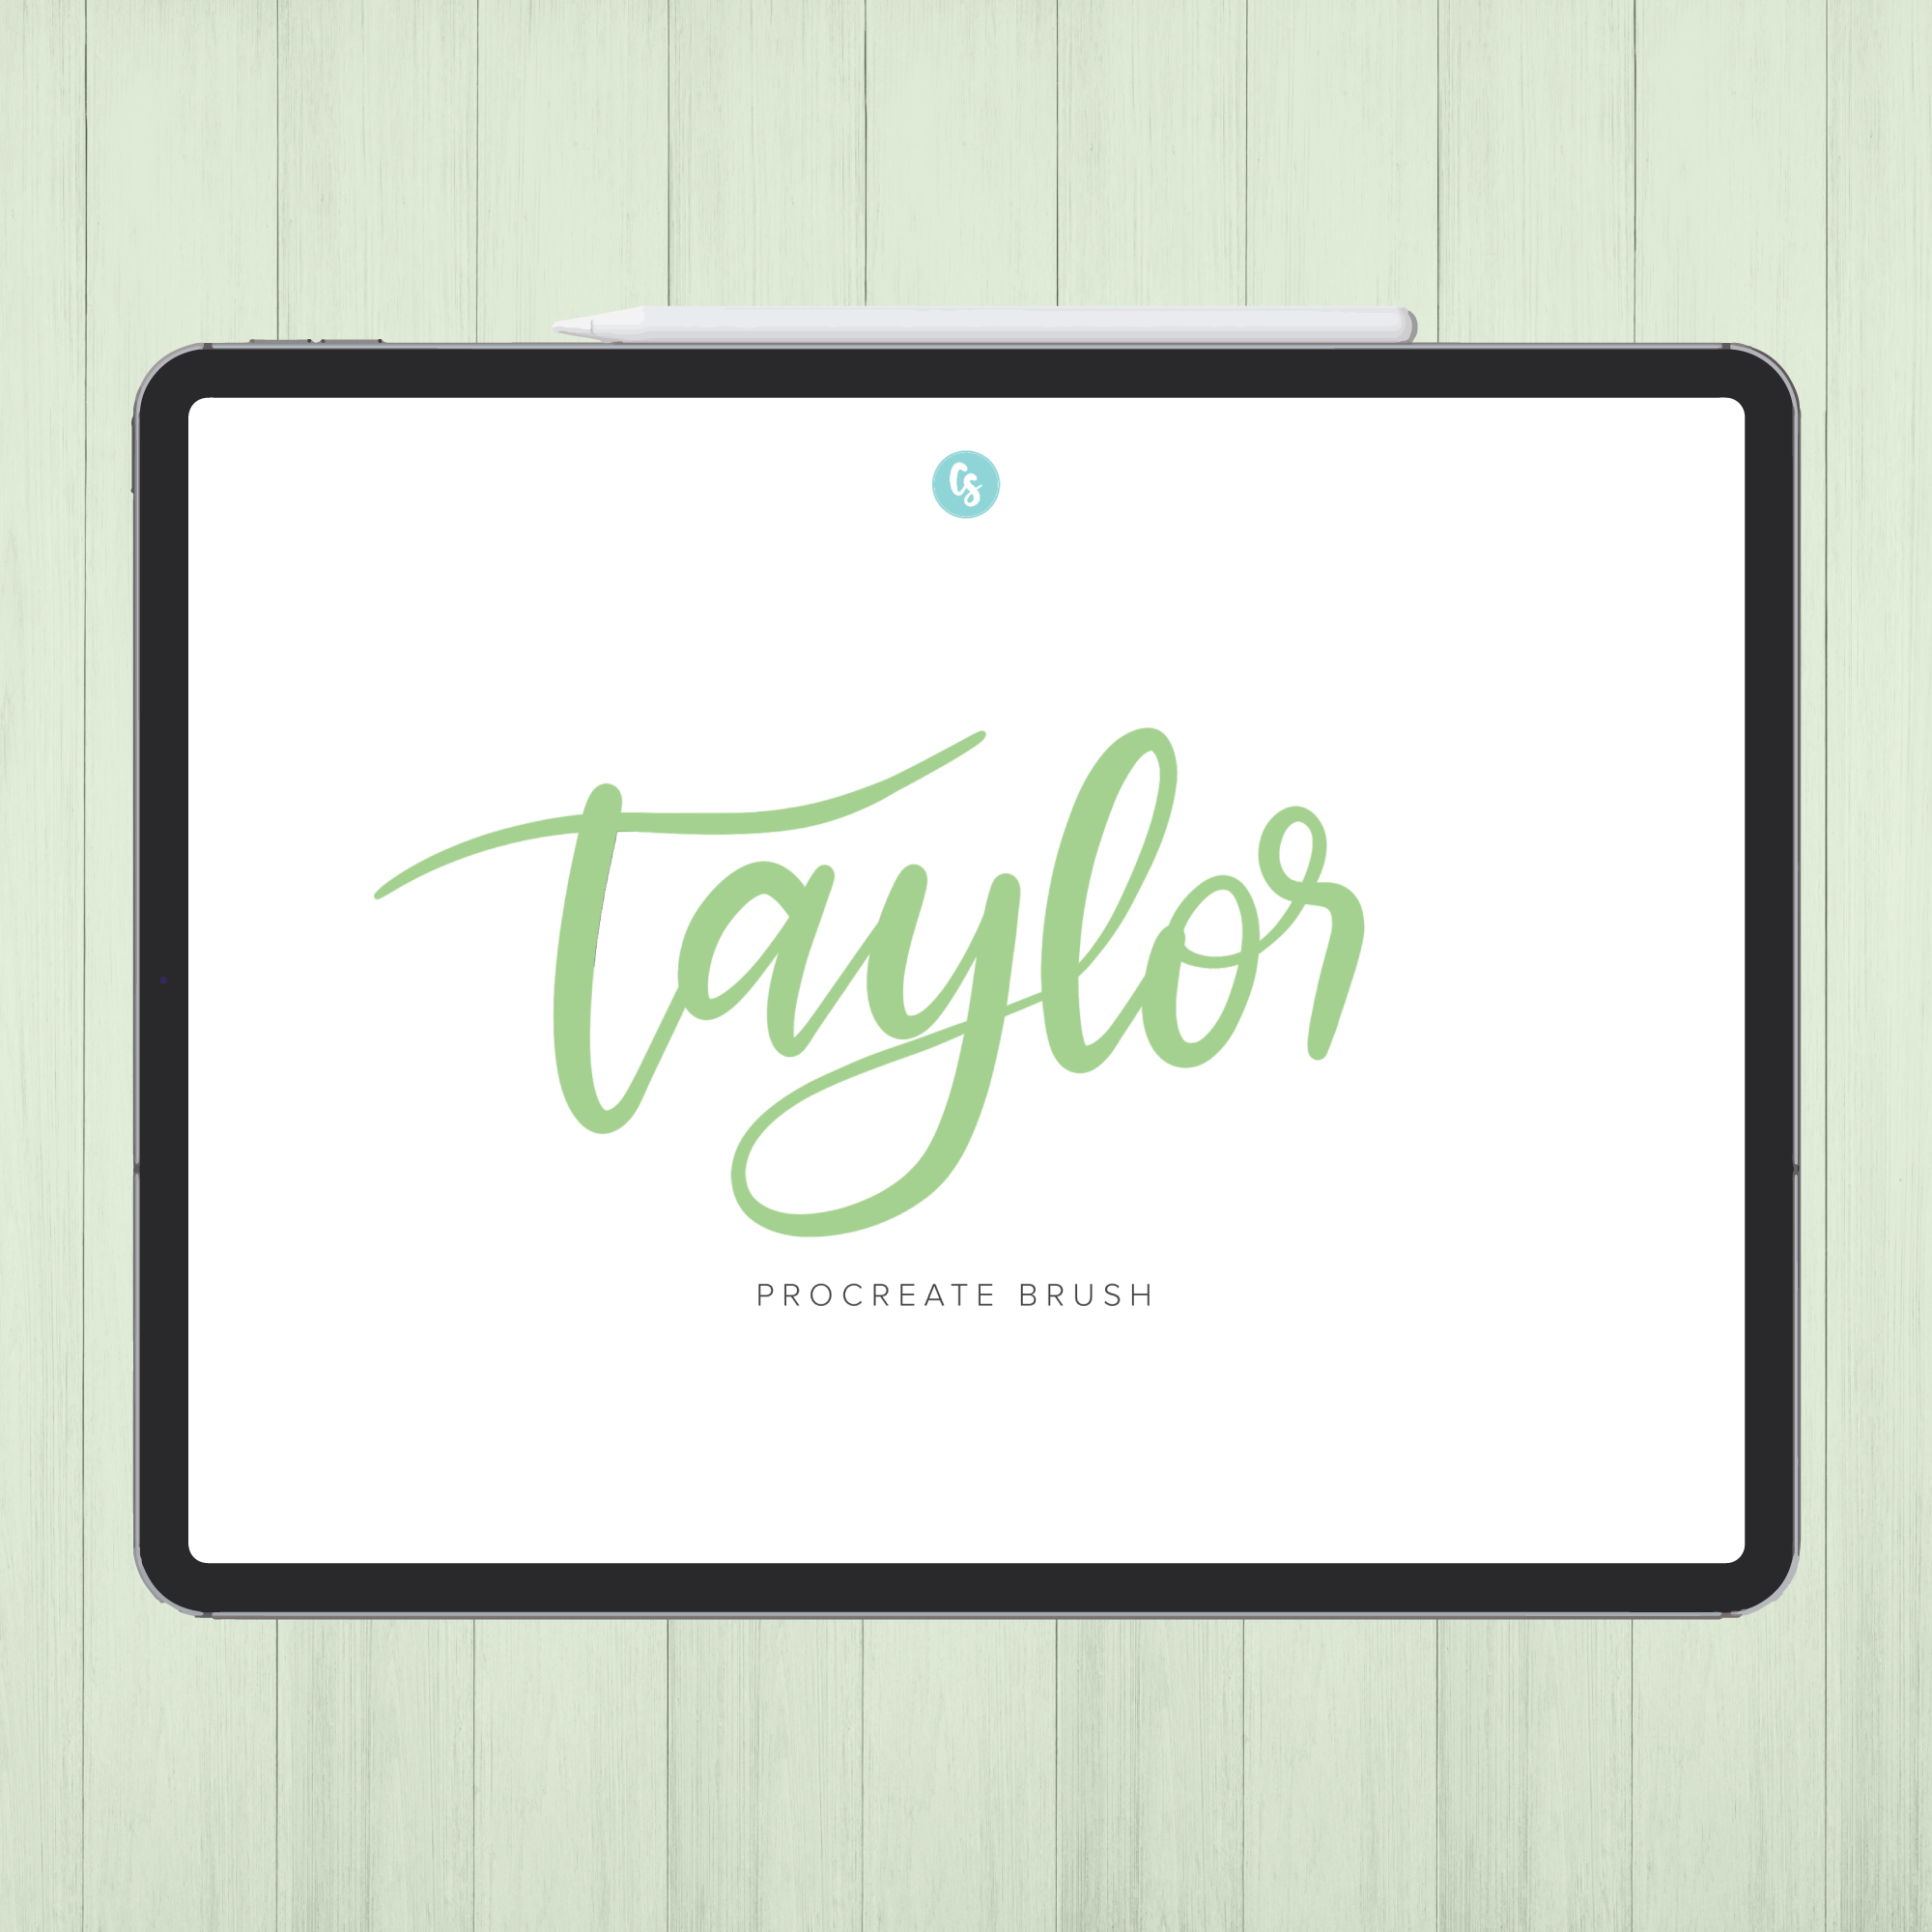 Taylor Procreate Brush